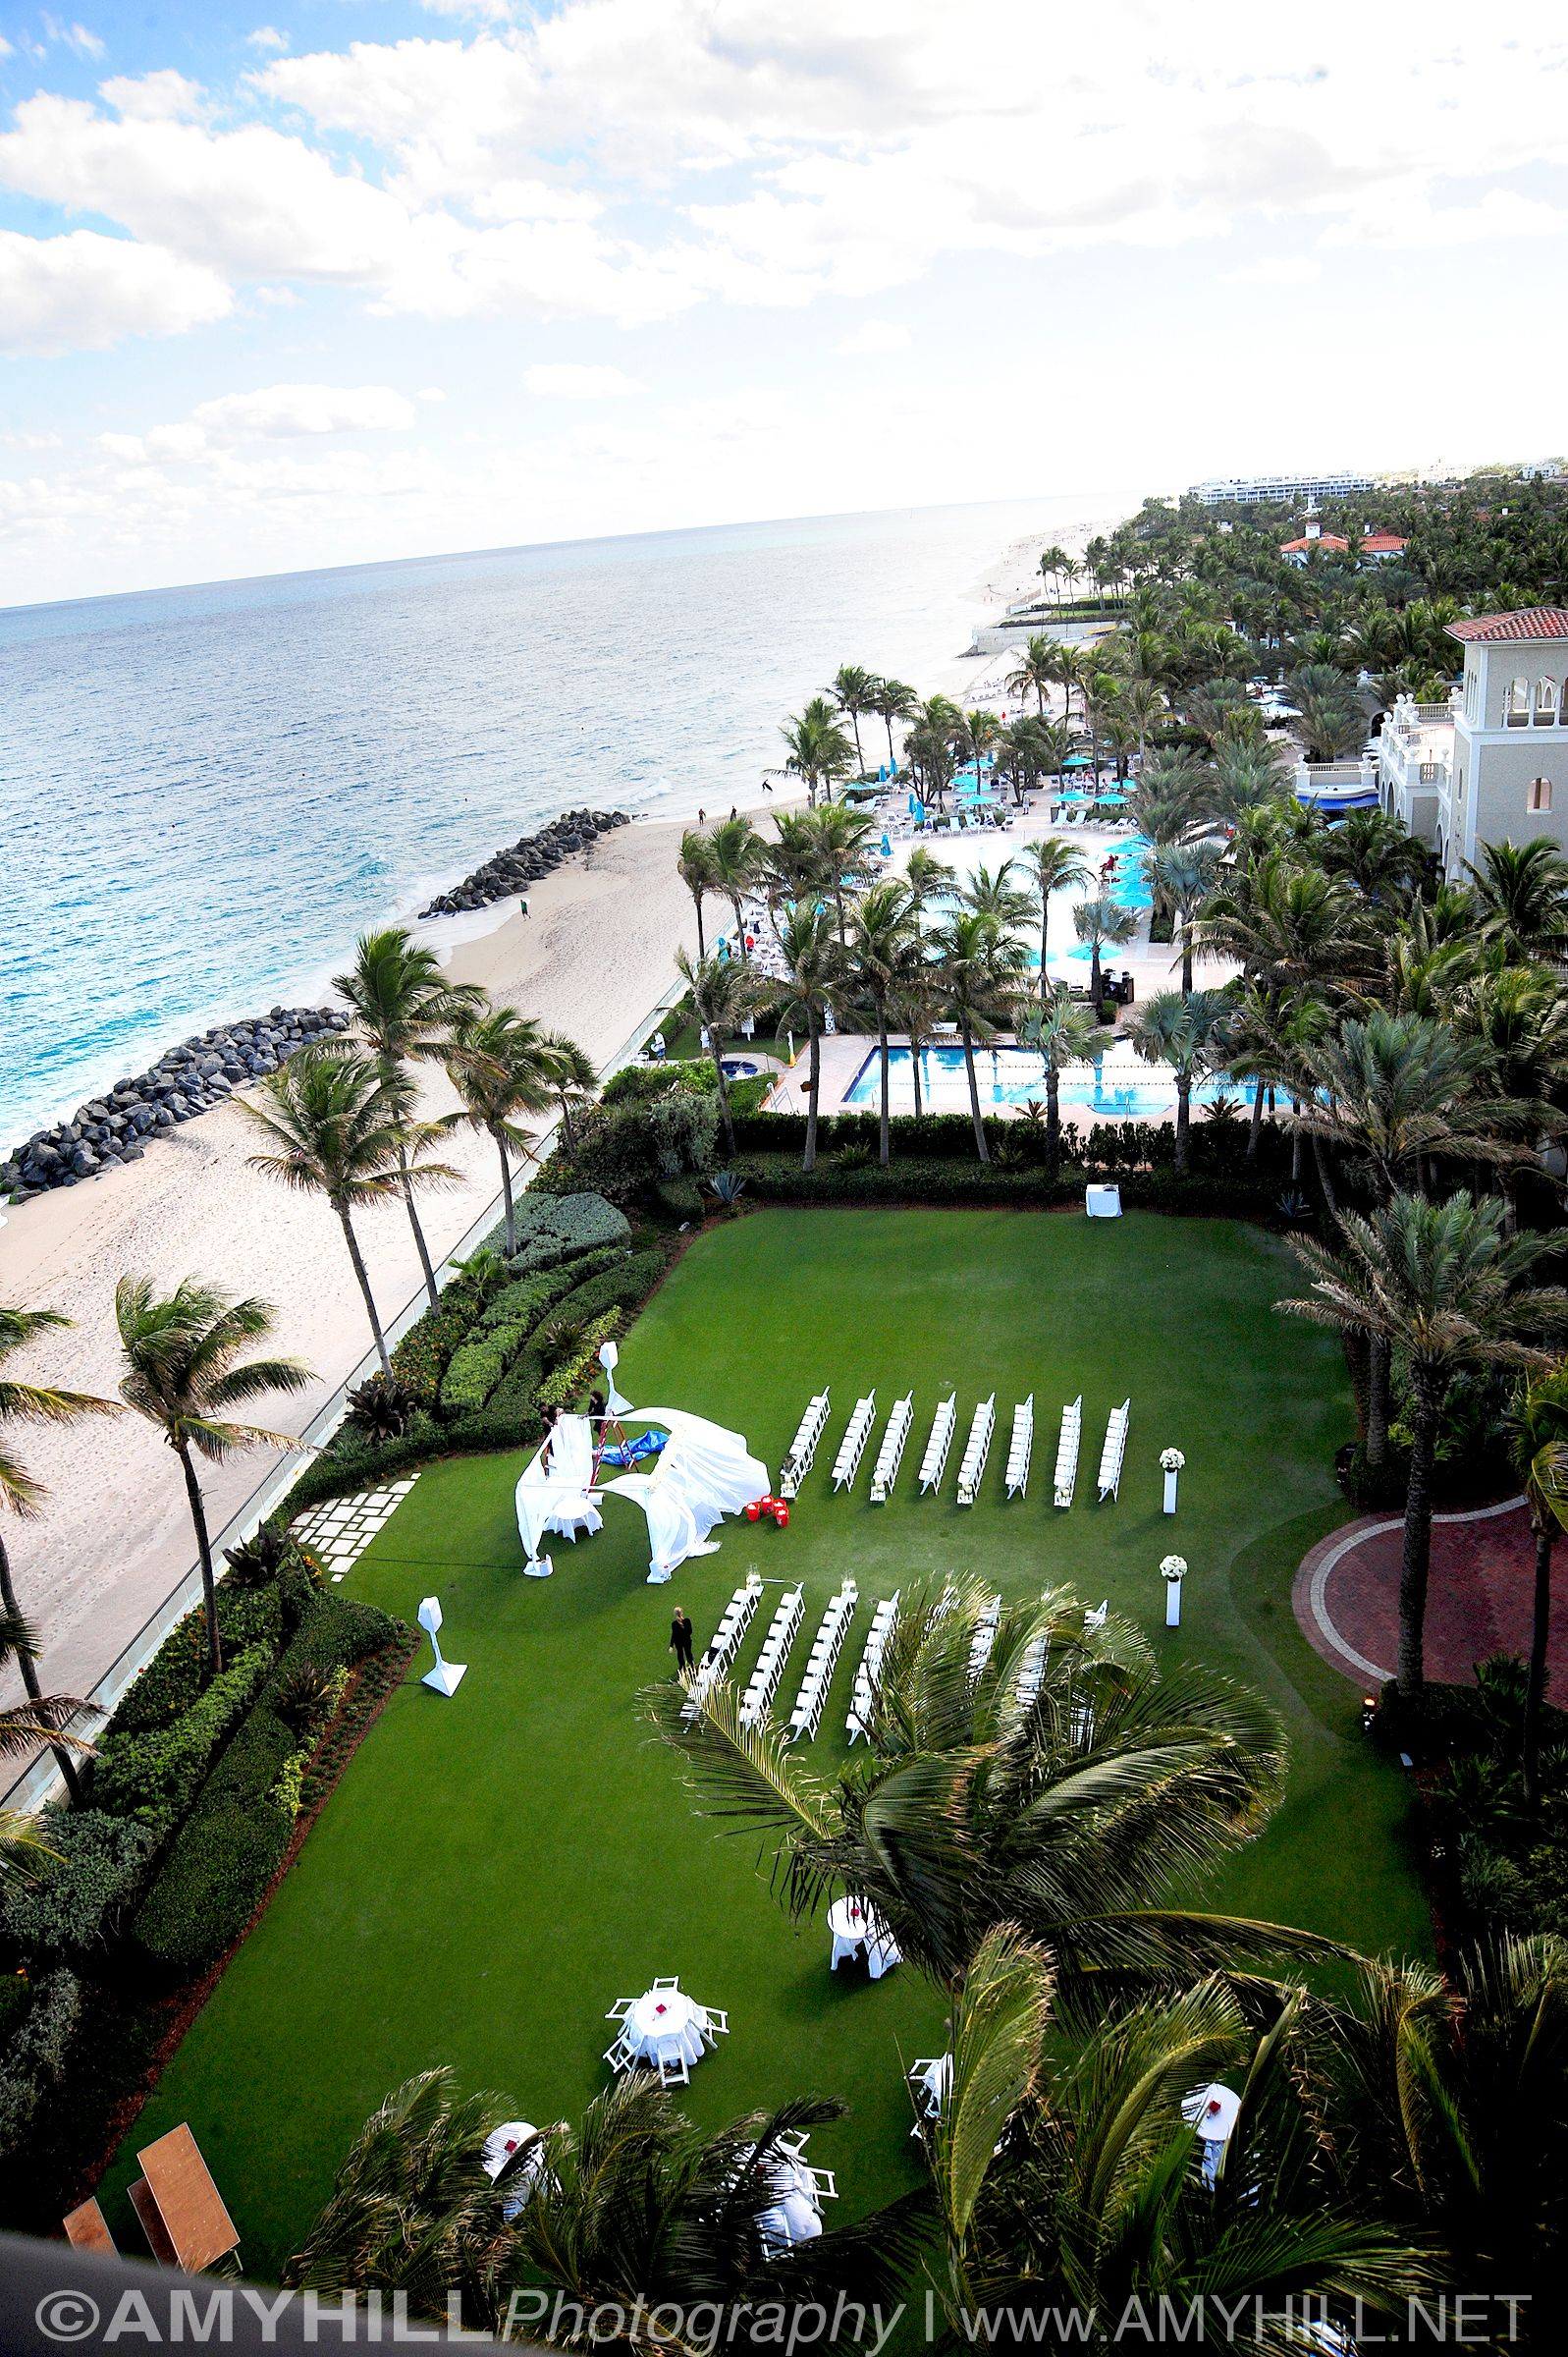 Where Our Wedding Will Be... Ocean Lawn At The Breakers